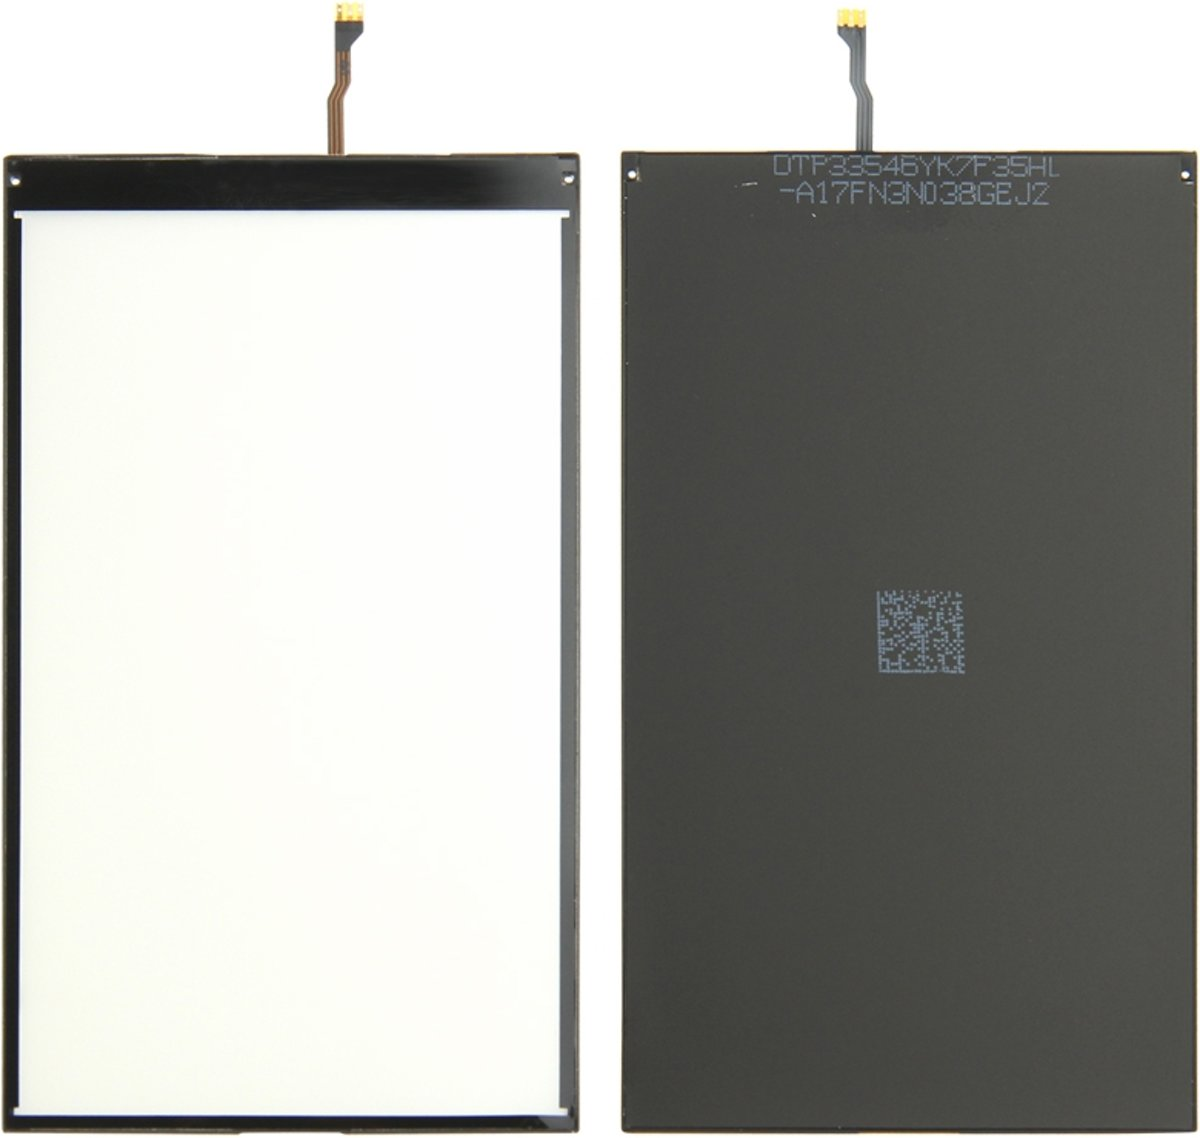 LCD Display Backlight Film / LCD Backlight eenheid Module reserveonderdelen voor iPhone 5S/5C kopen